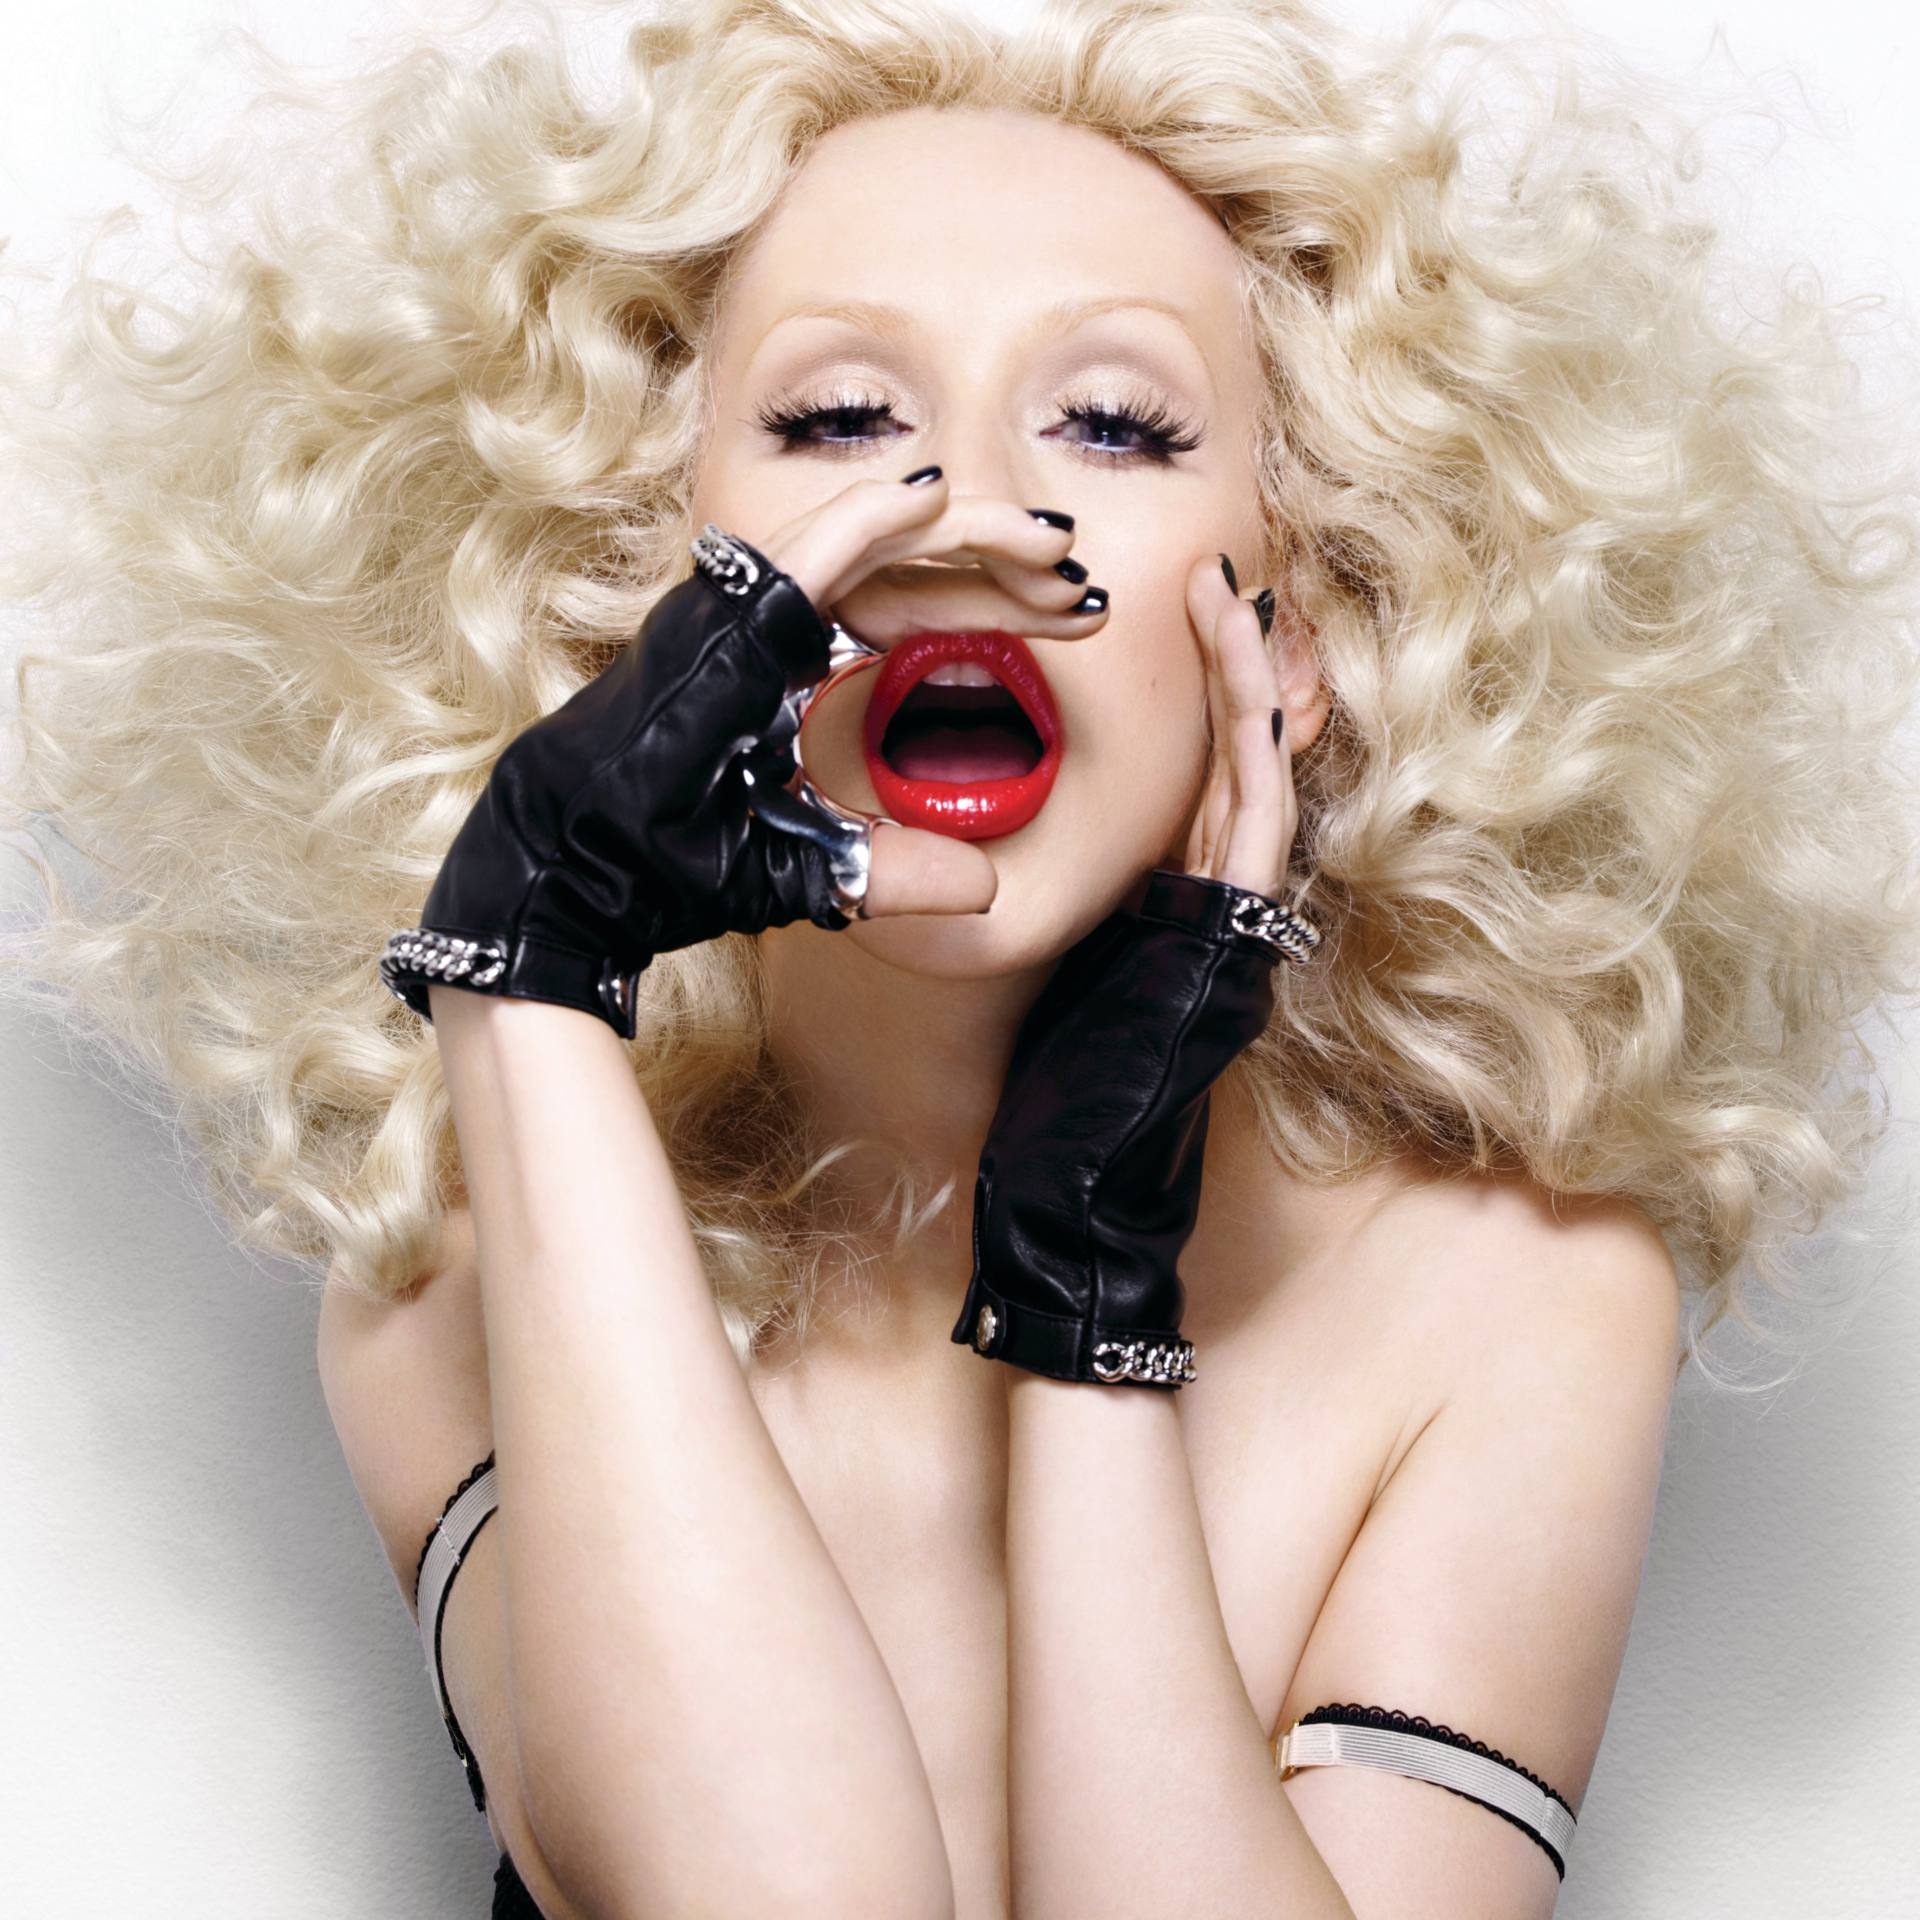 Christina Aguilera – Sexy Boobs In Naked Photoshoot Outtakes From Bionic Album Photoshoot 0011